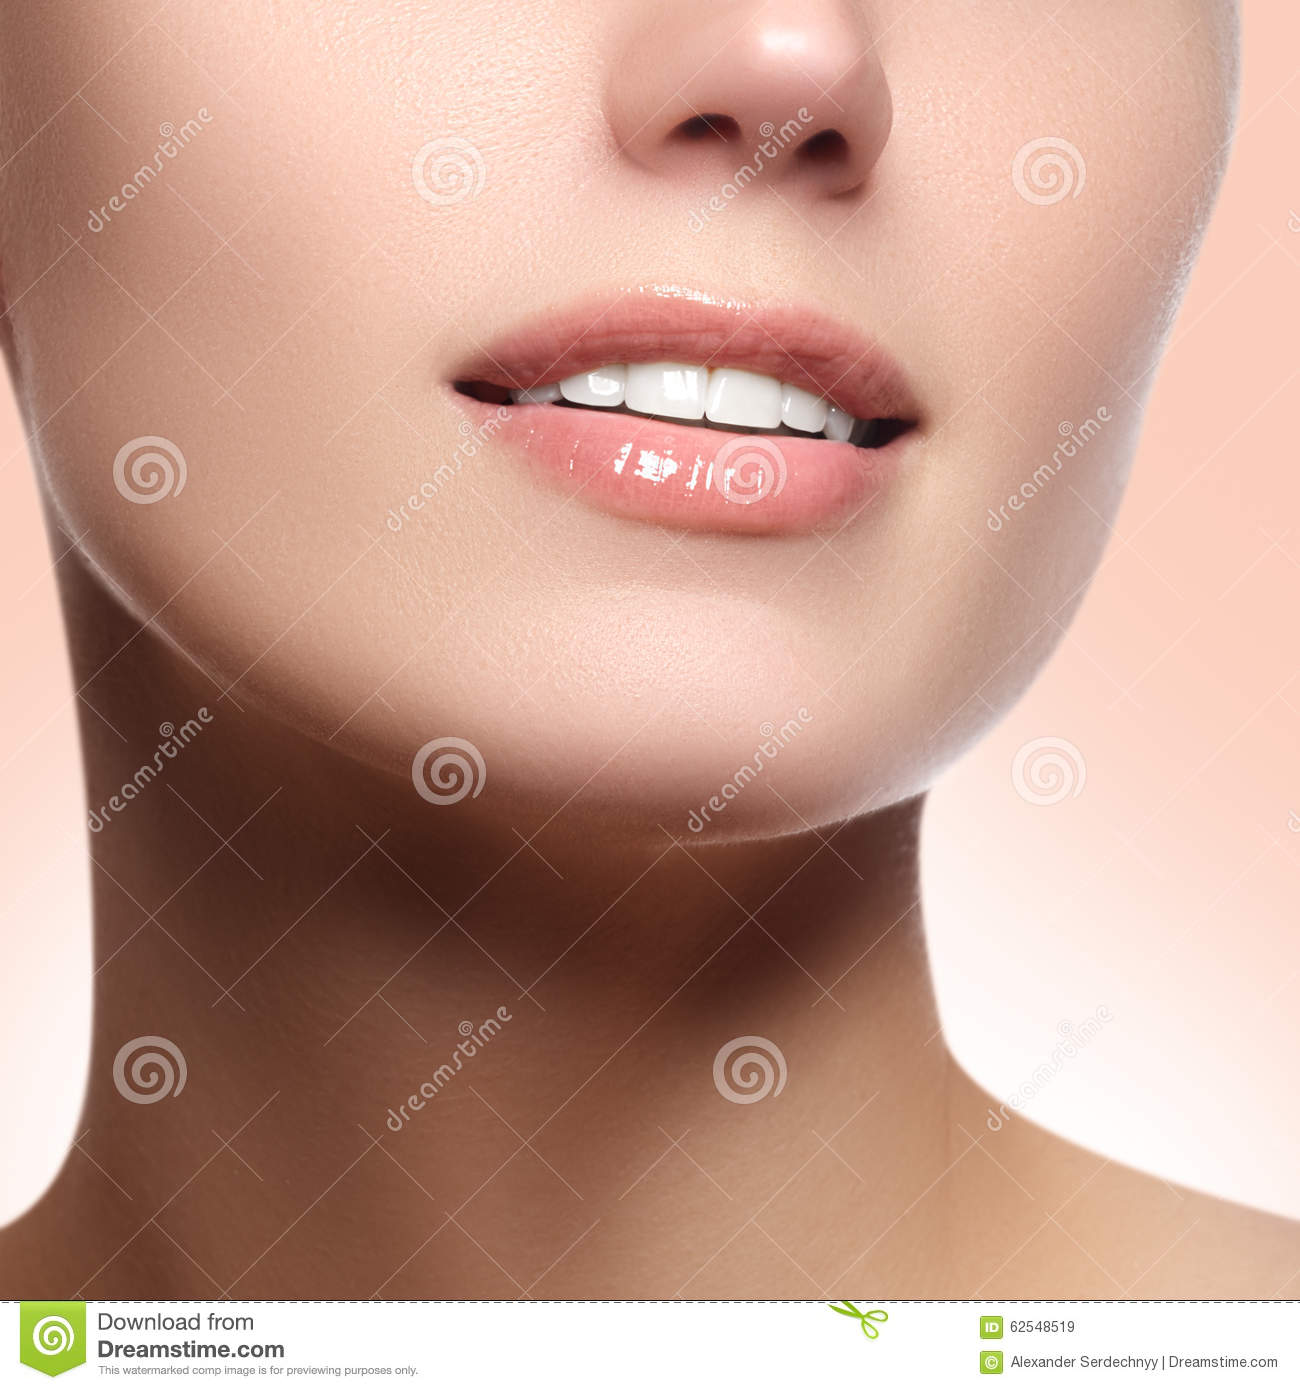 perfect smile with white healthy teeth and natural full lips dental